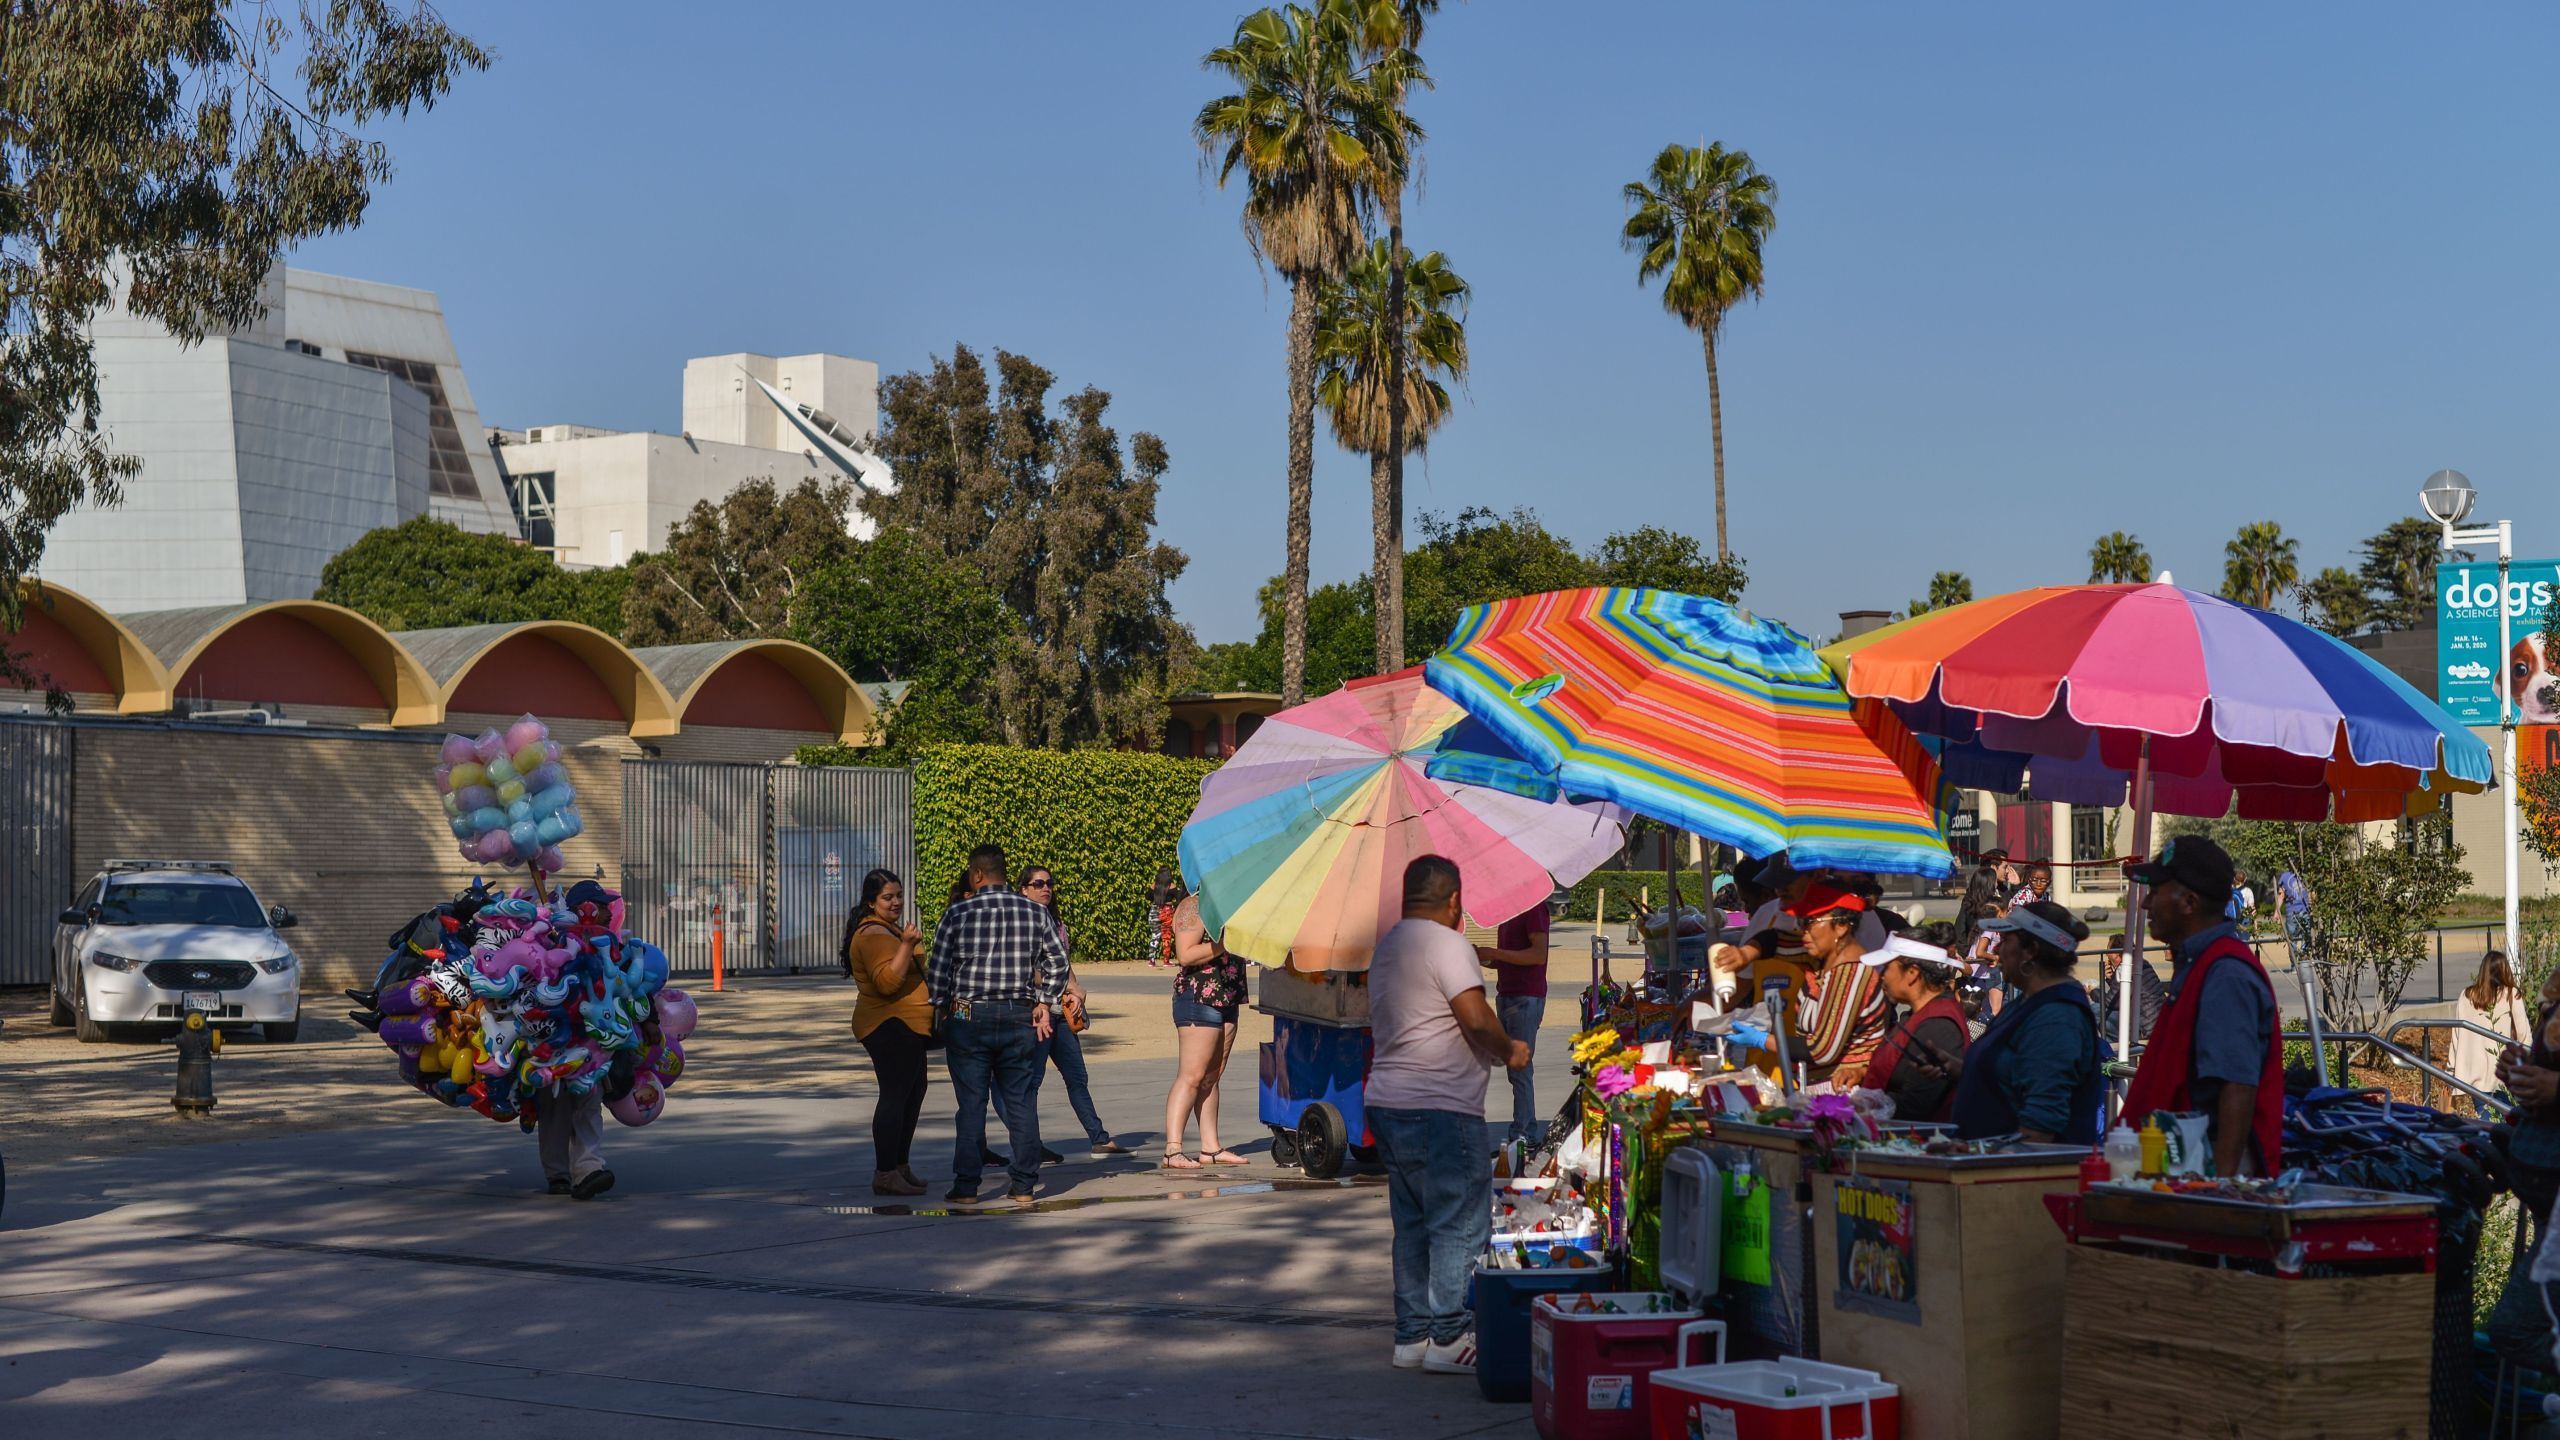 Street vendors work outside the California Science Center at Exposition Park in Los Angeles on March 24, 2019. (Austin Pallier/AFP via Getty Images)